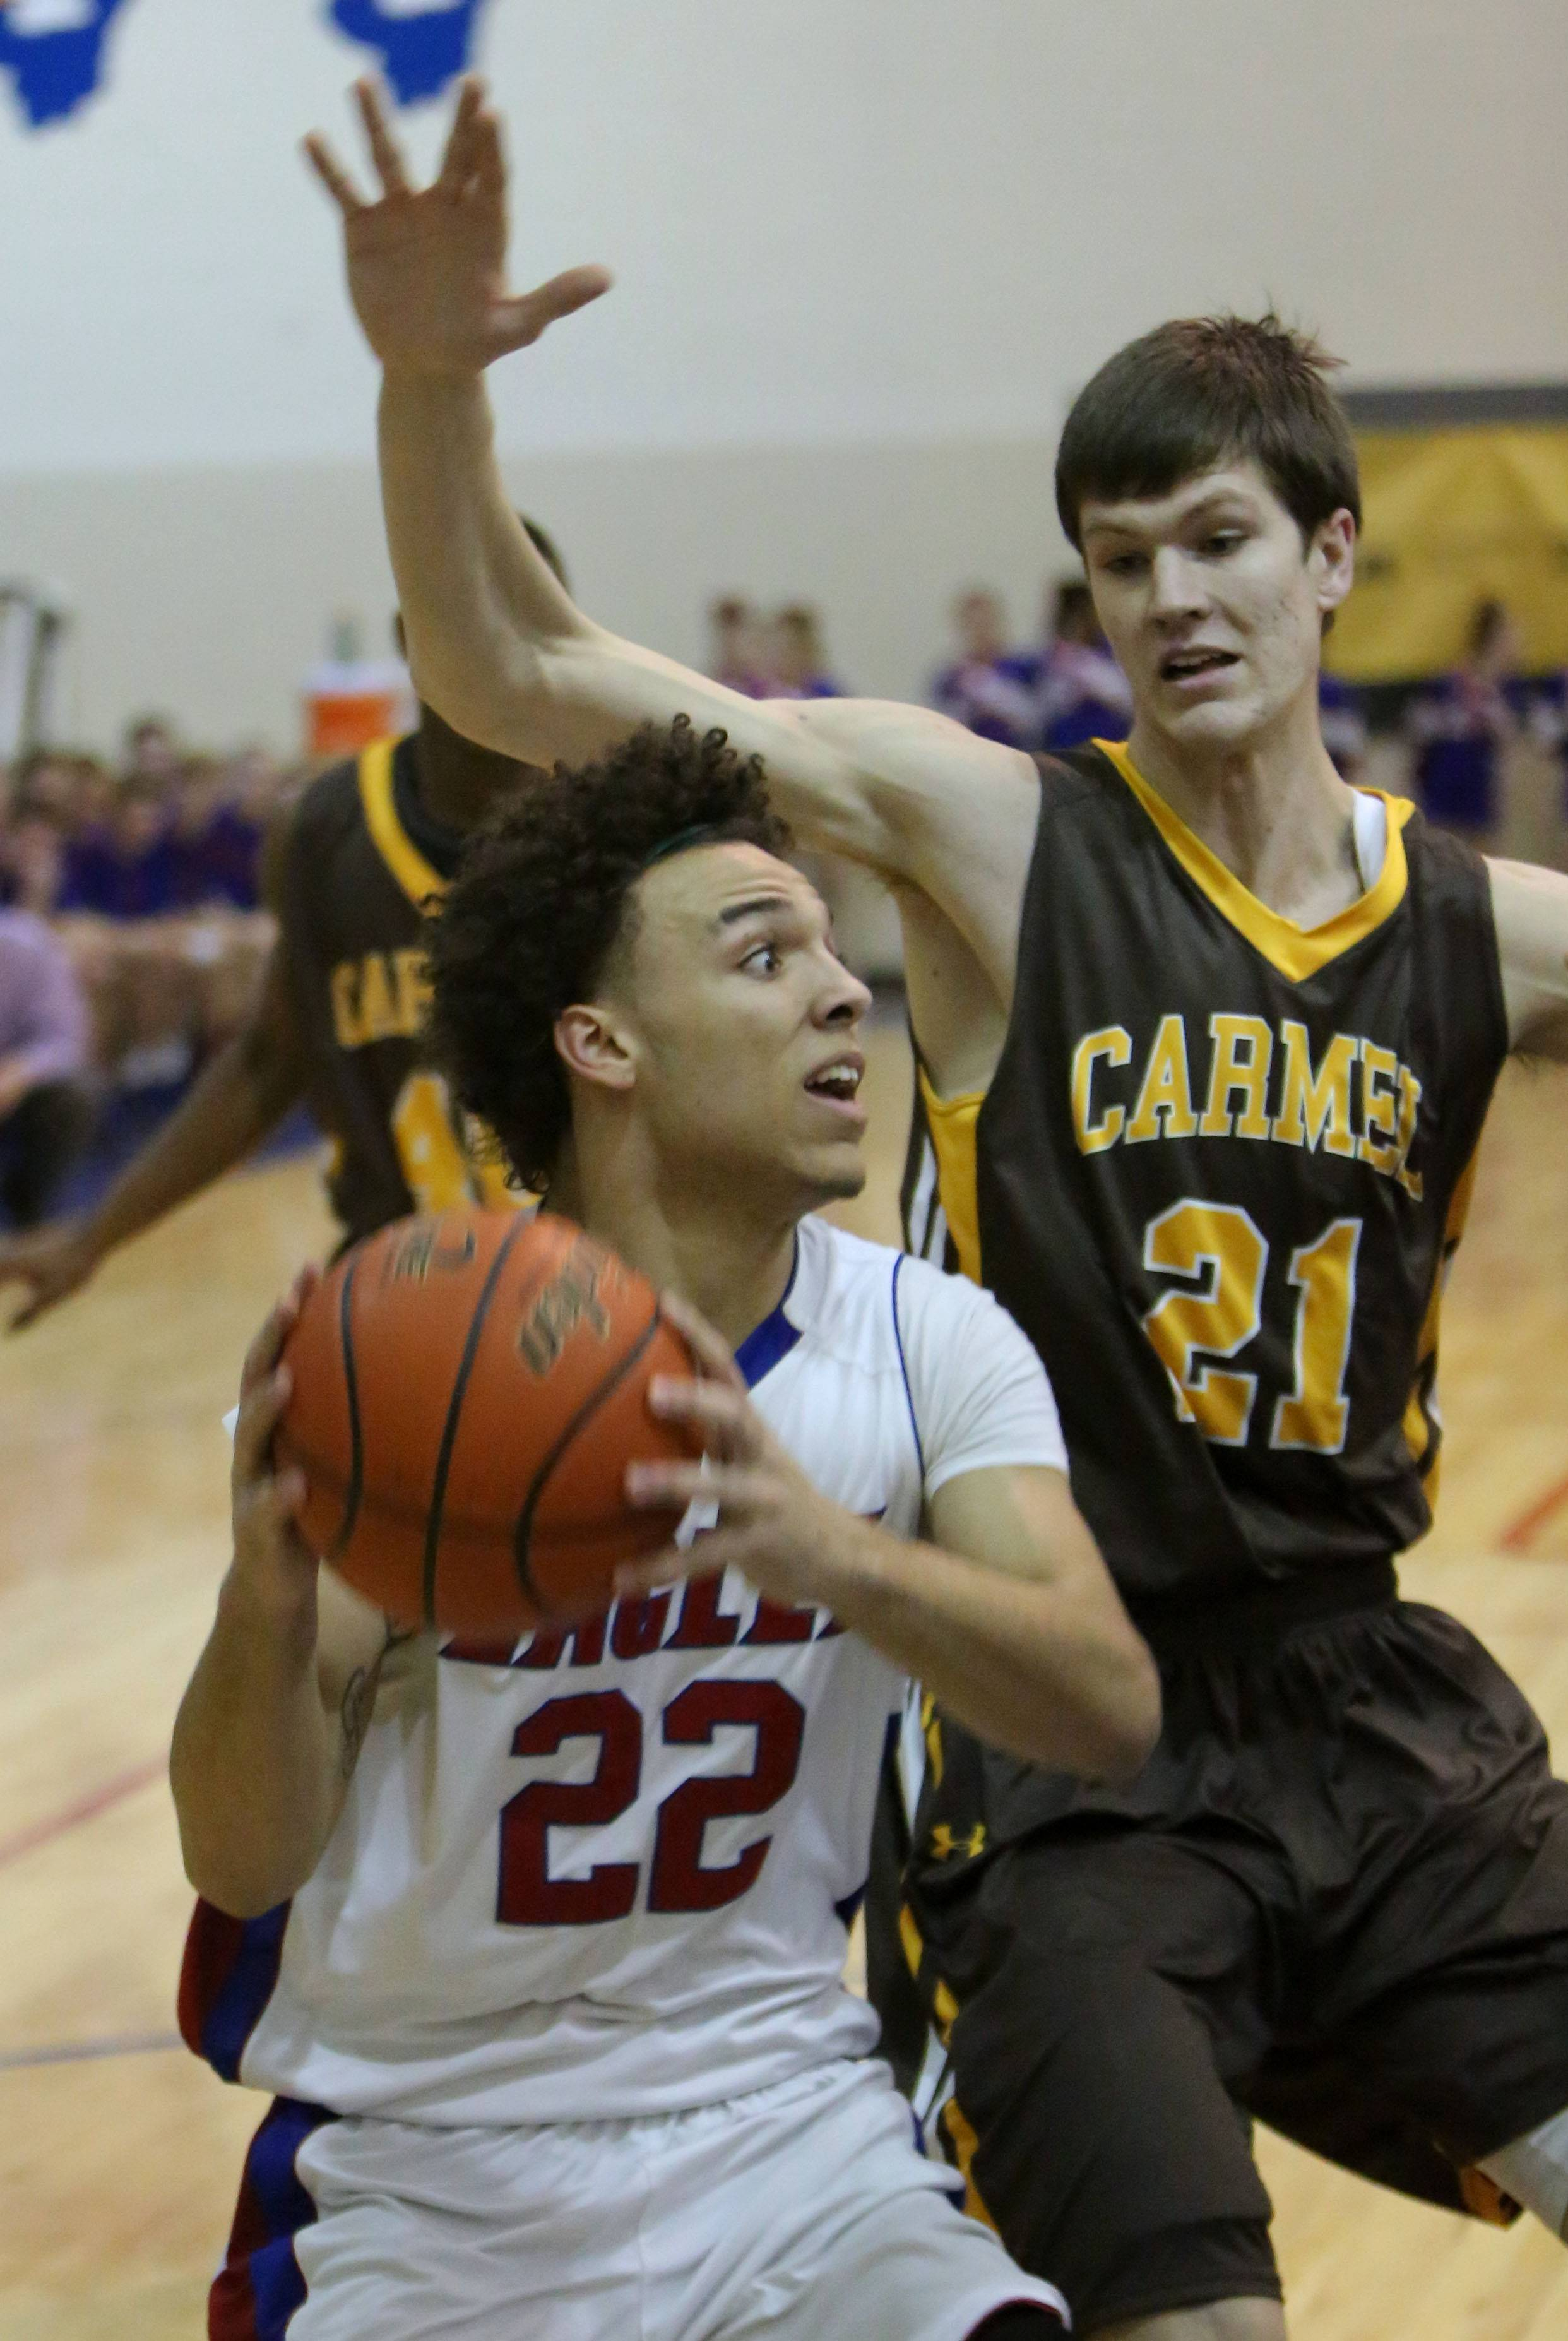 Lakes' Carmel's Tramone Hudson, left, drives to the hoop on Carmel's Jack George on Monday night at Lakes.